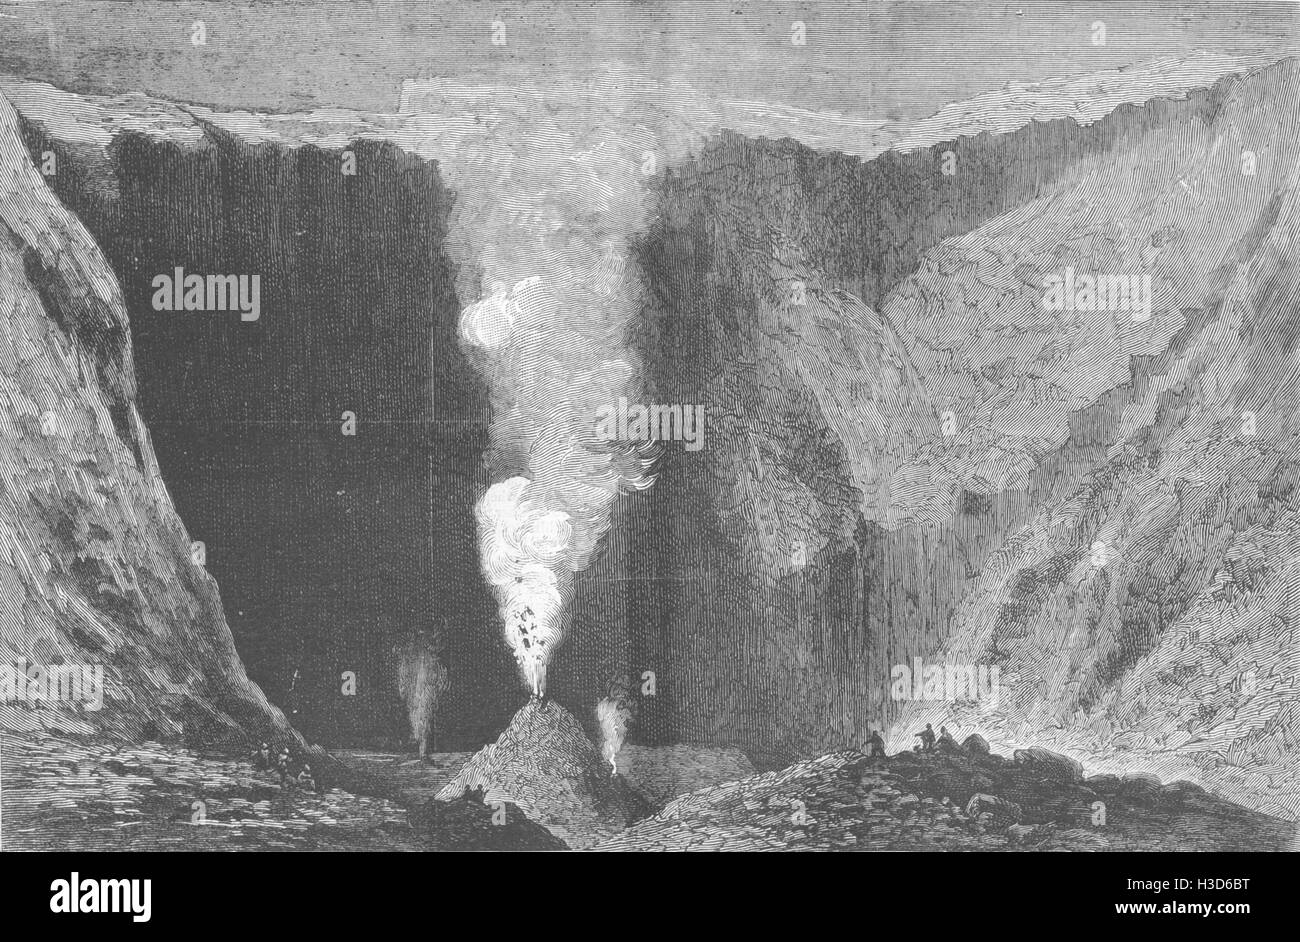 ITALY Eruption of Mount Vesuvius-Crater 21st Aug 1878. The Graphic - Stock Image